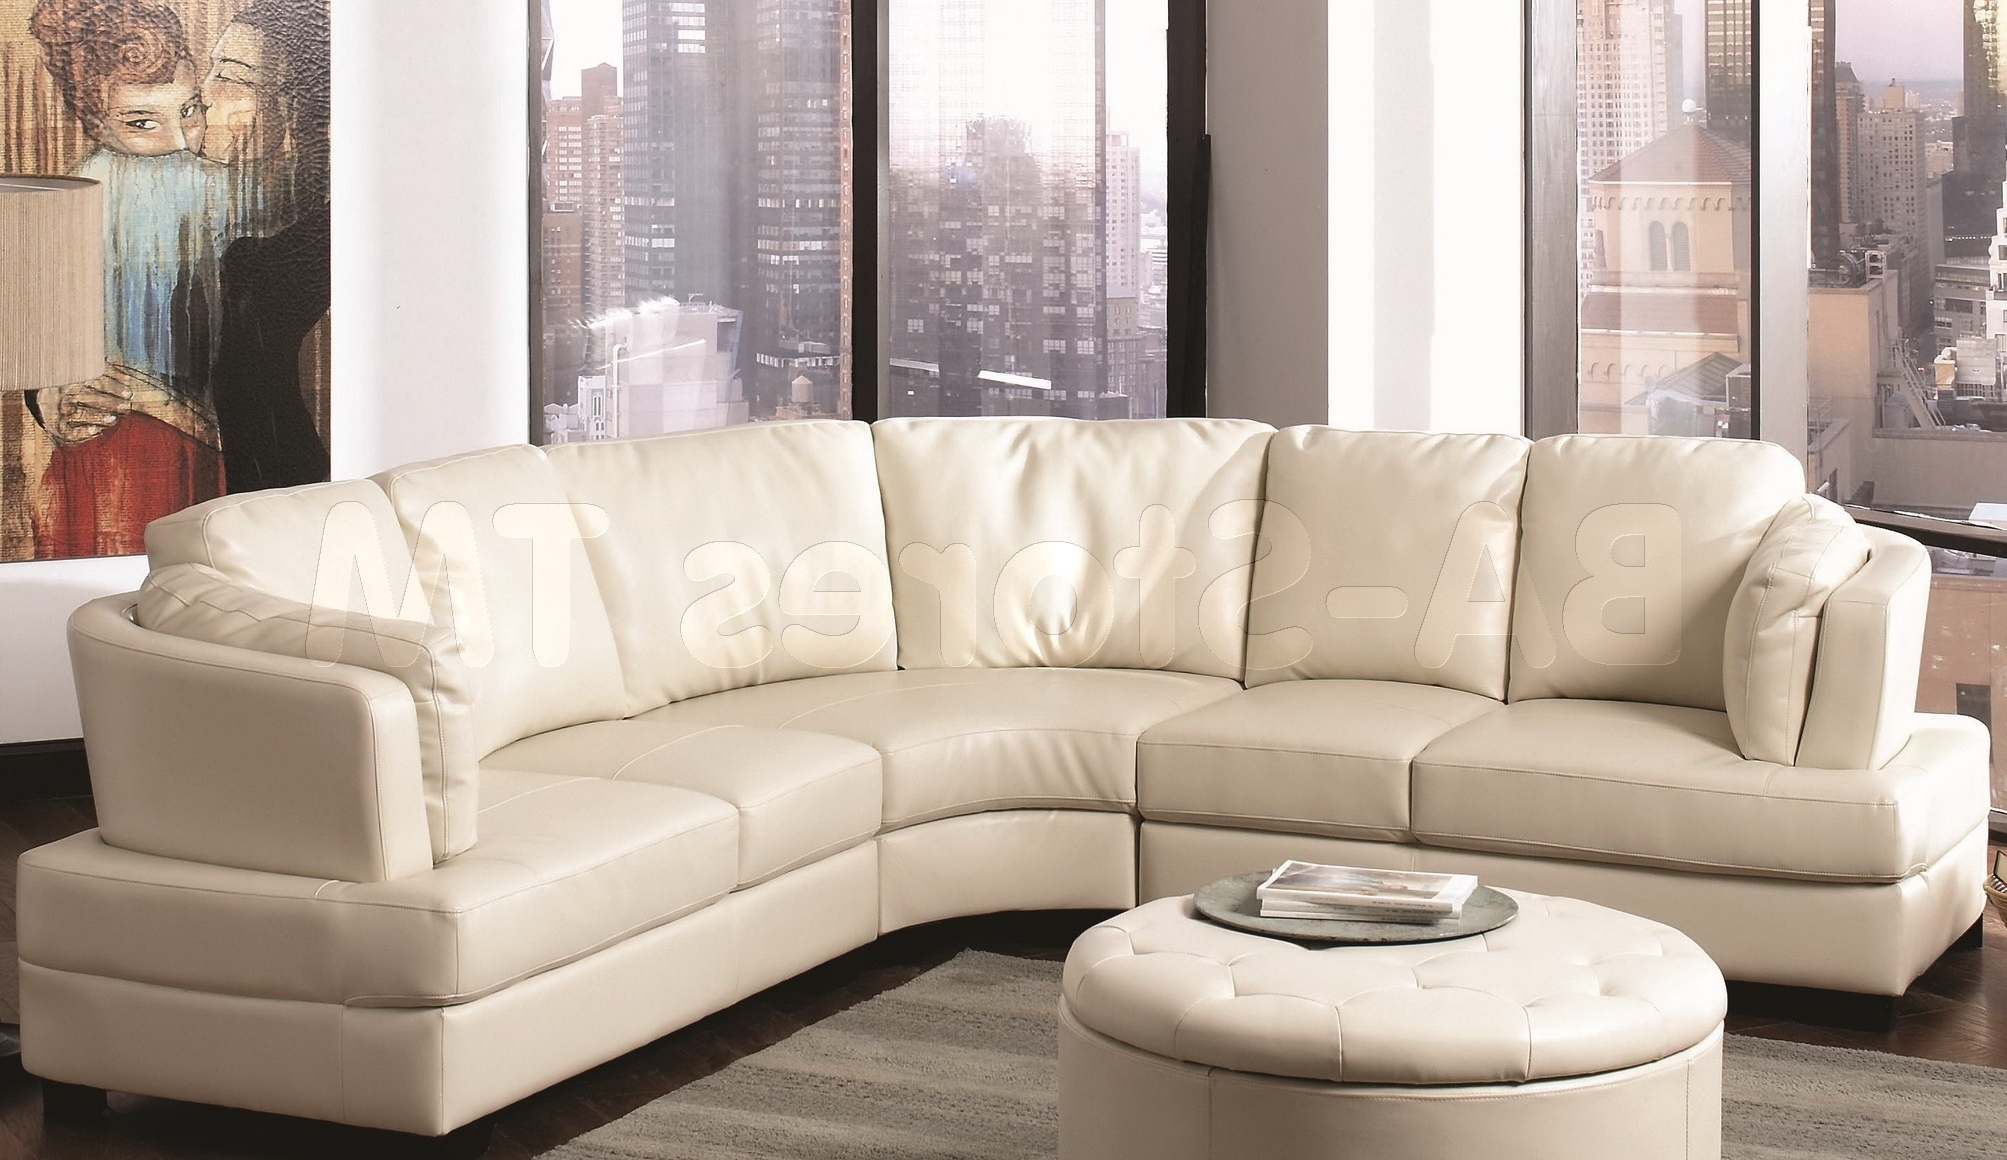 Latest Rochester Ny Sectional Sofas Intended For Collection Sectional Sofas Rochester Ny – Mediasupload (View 4 of 20)